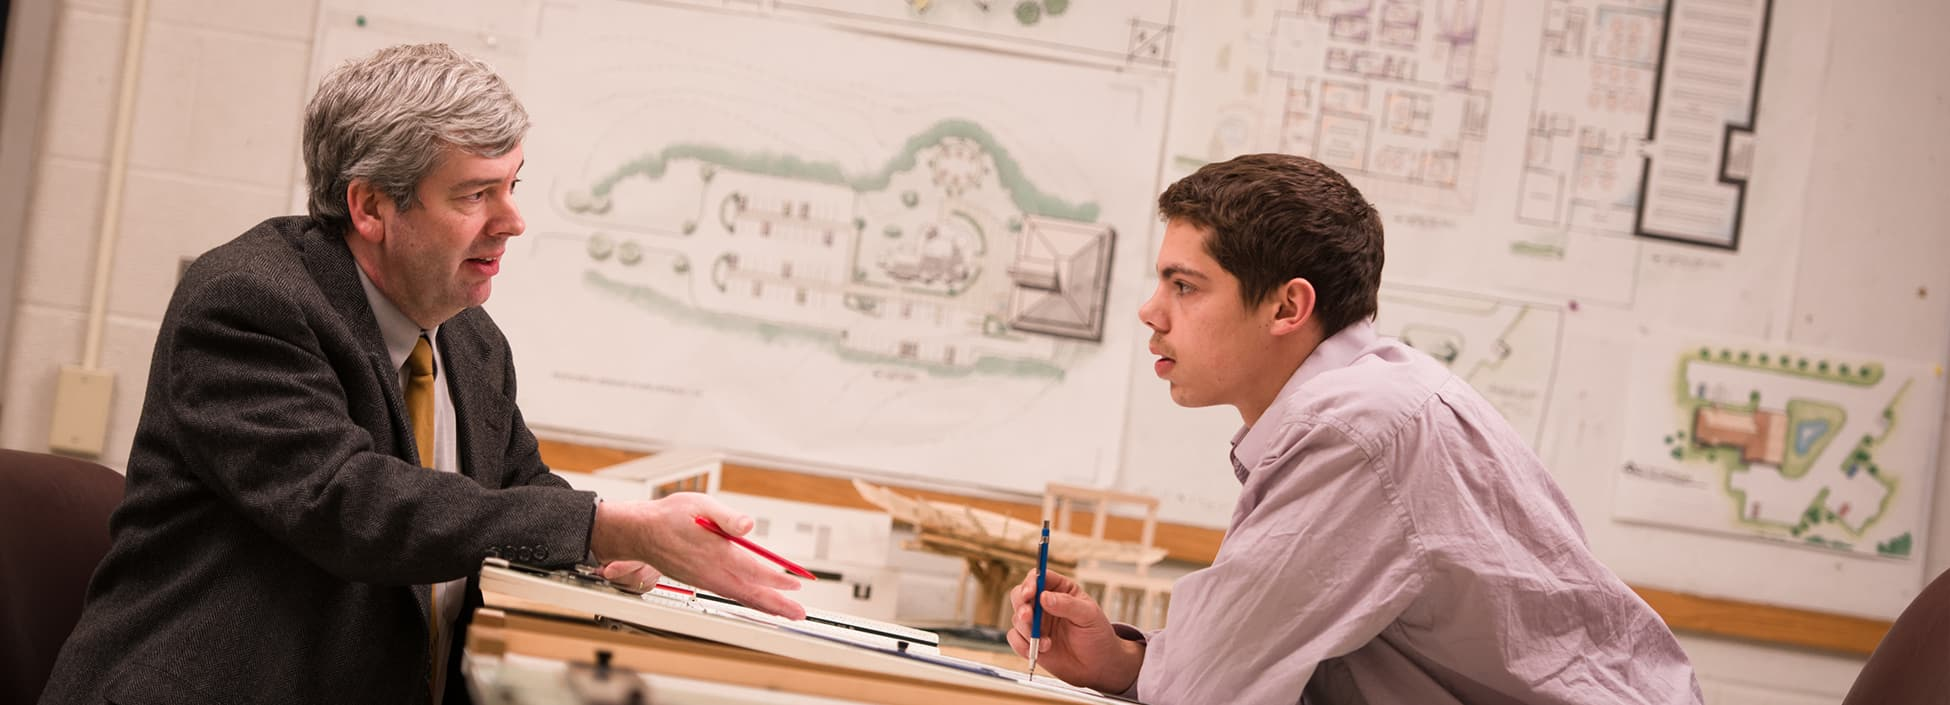 Professor Brad Miller works with a student in the Architectural Engineering Technology program